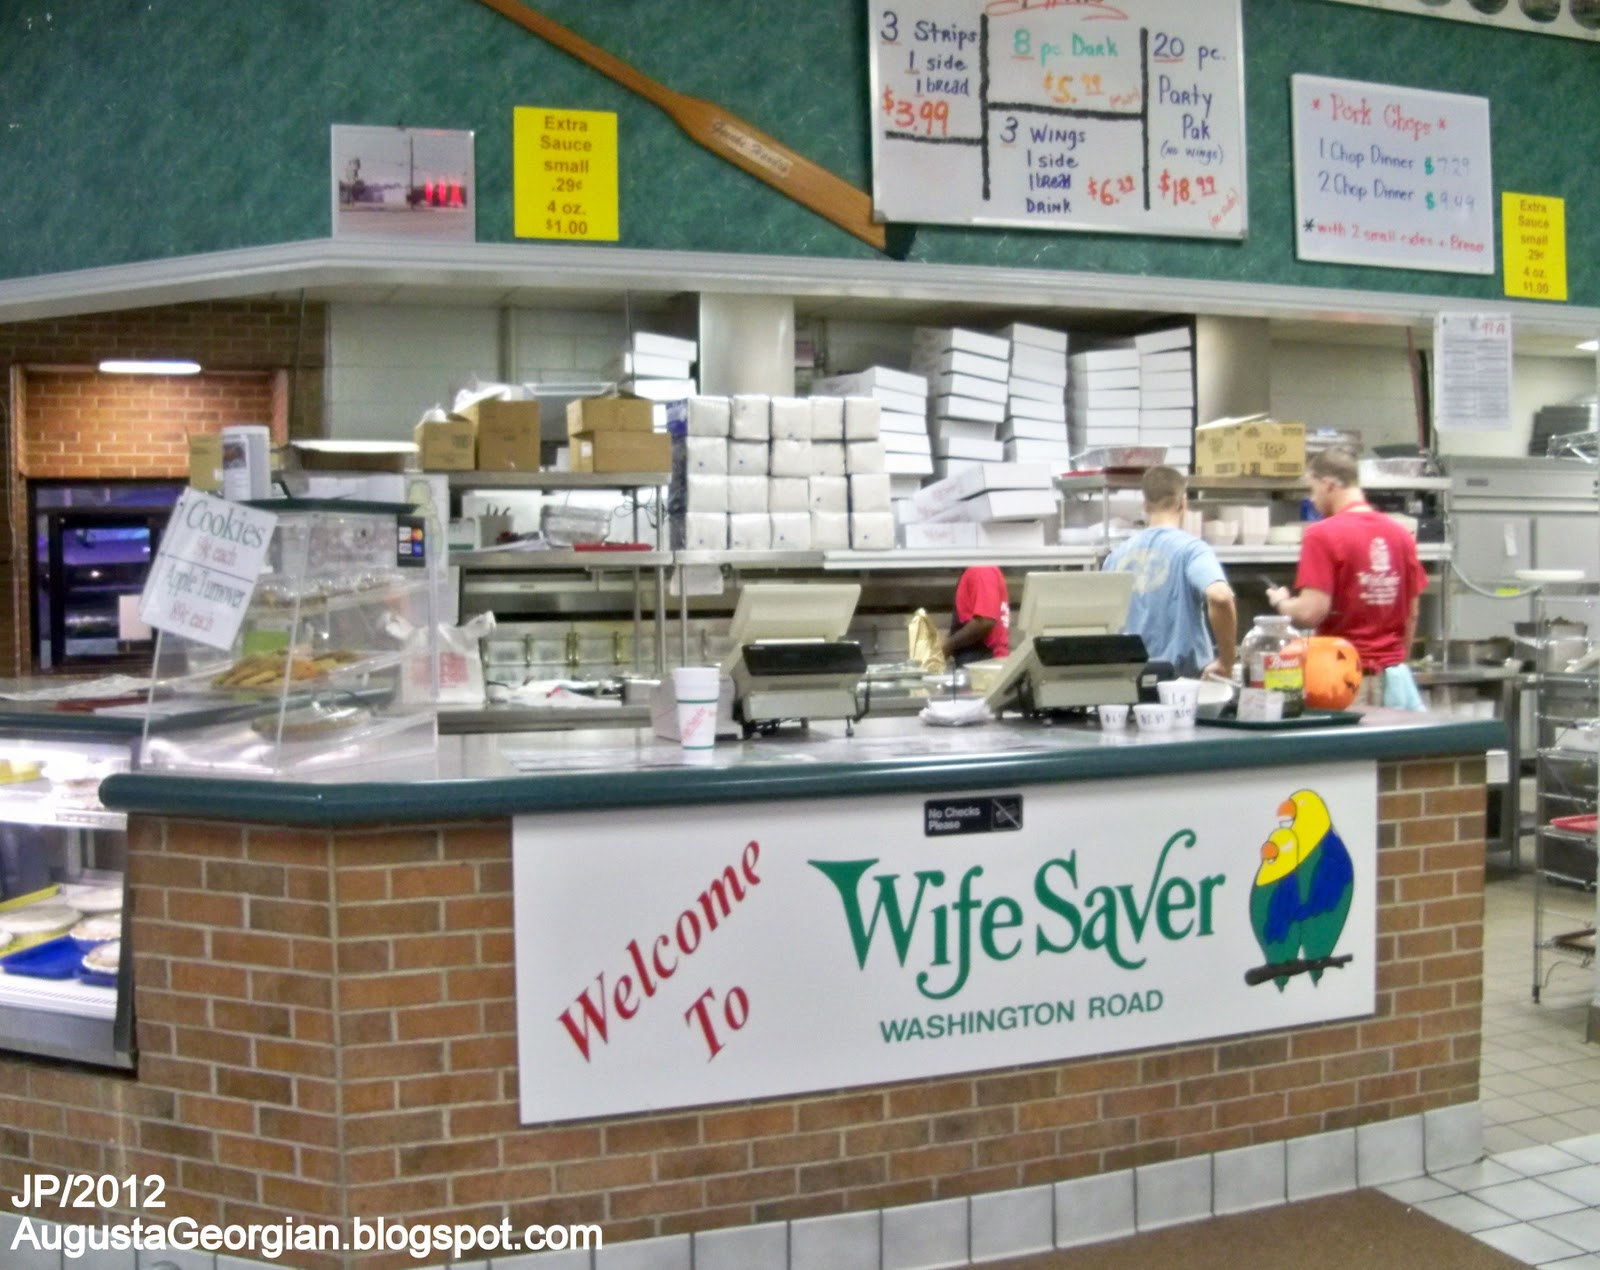 Wife Saver Augusta Georgia Washington Road Fast Food Restaurant En Seafood Richmond County Ga